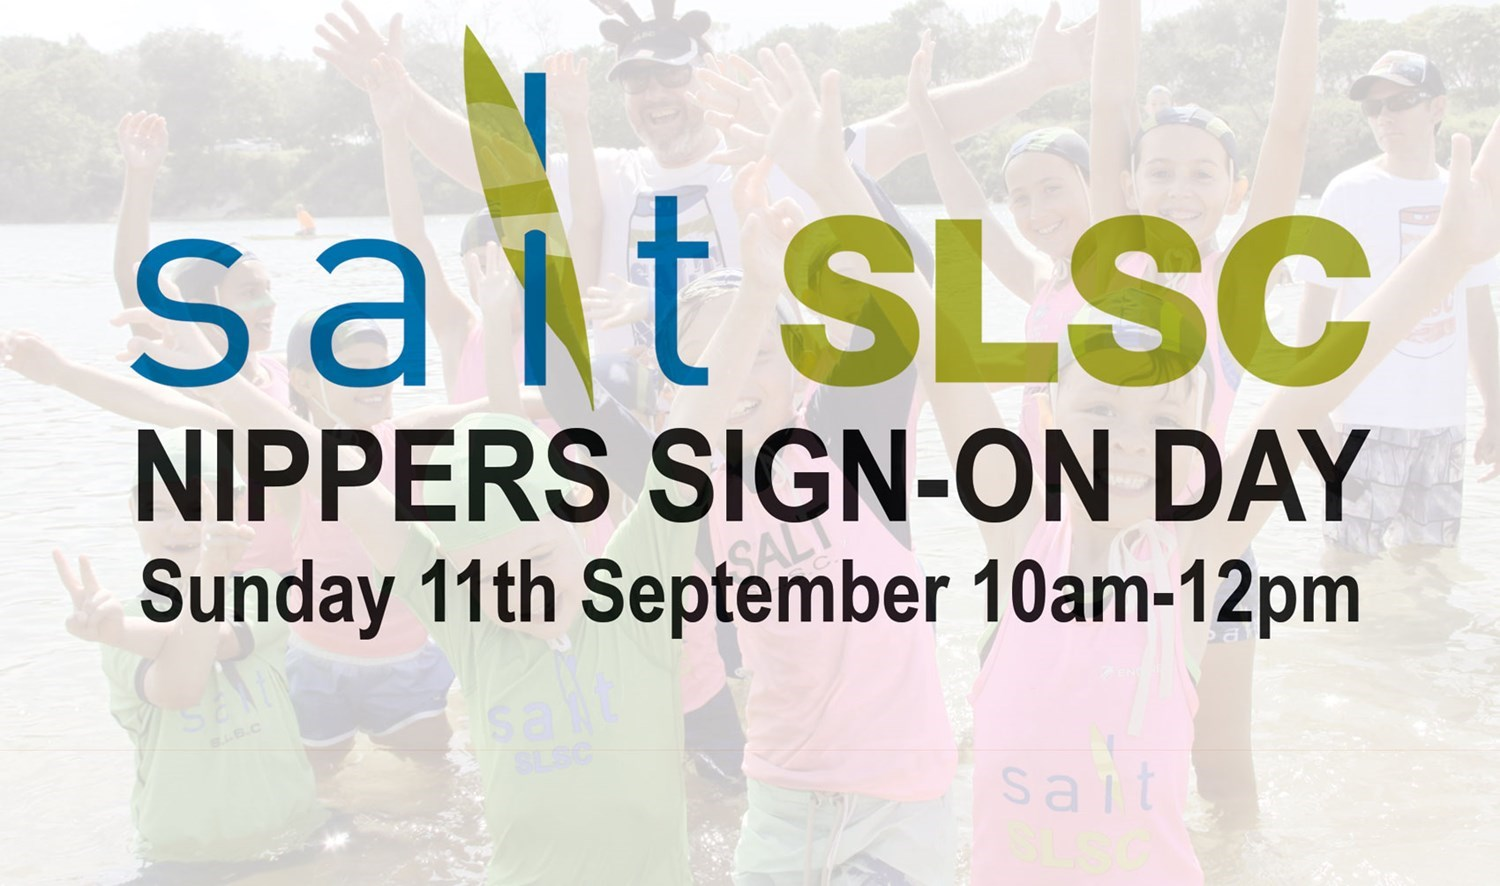 Nippers Sign-on Day